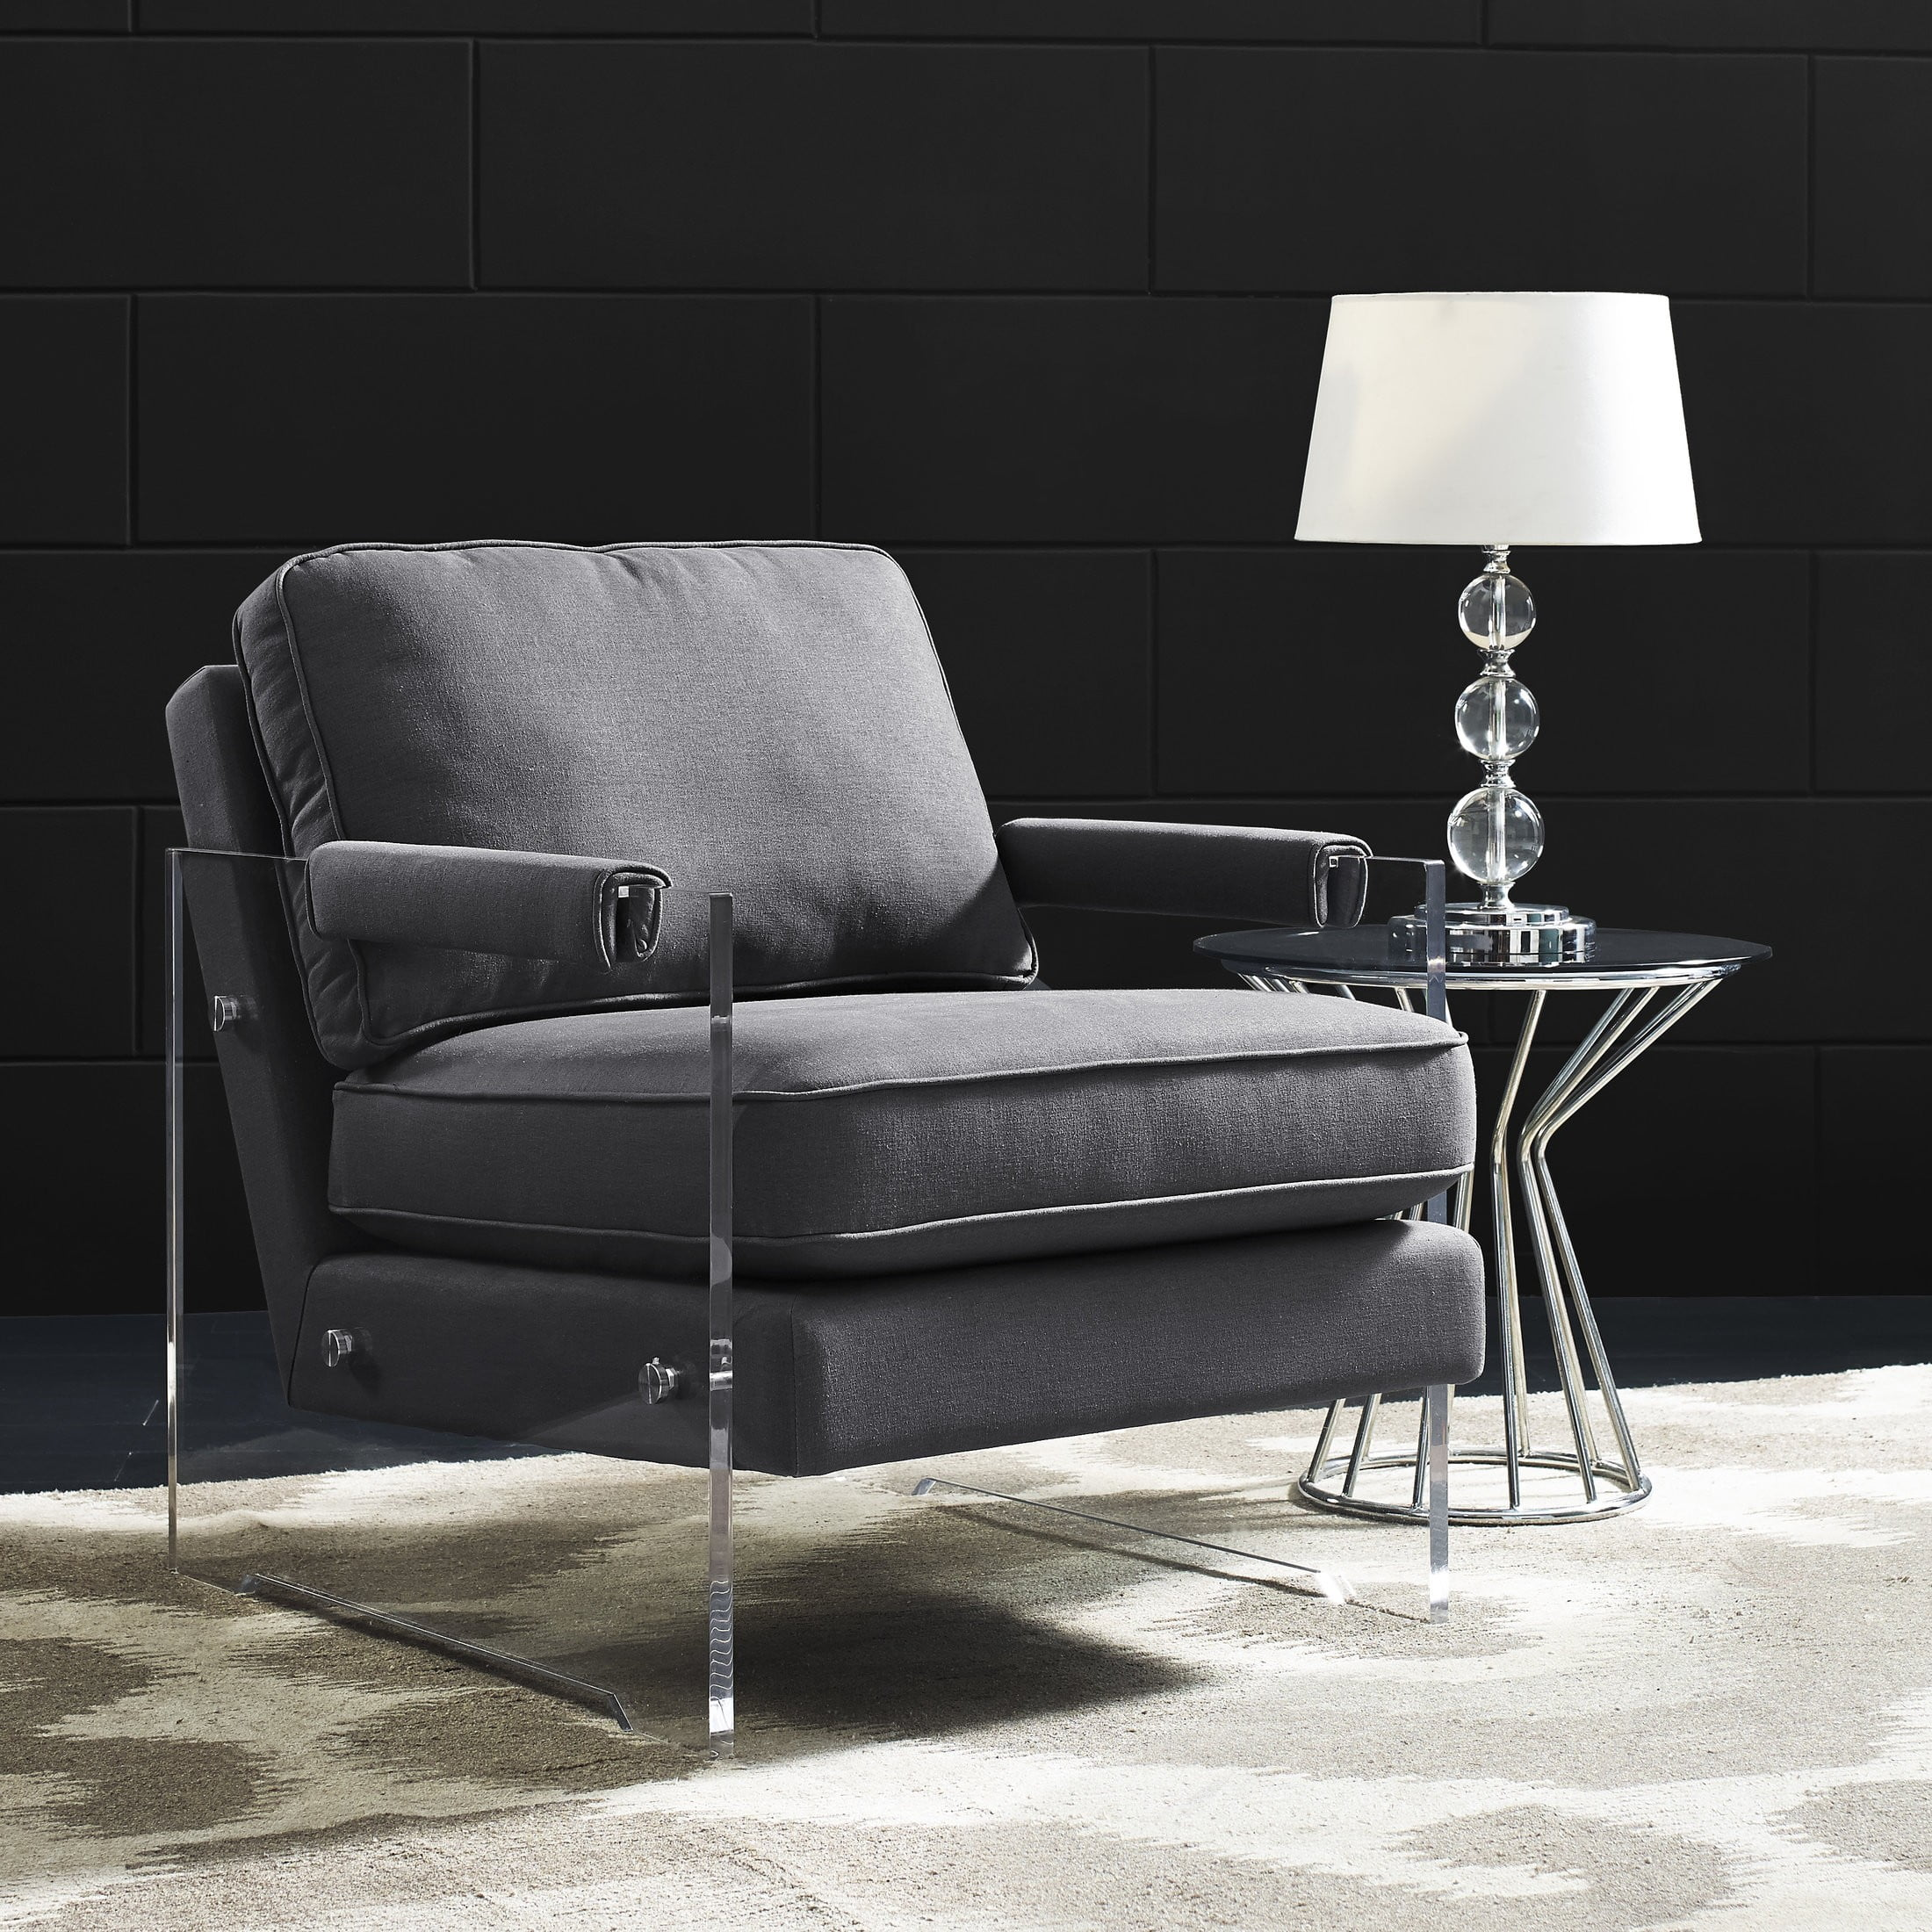 Serena Dark Grey Floating Lucite Chair from TOV A71